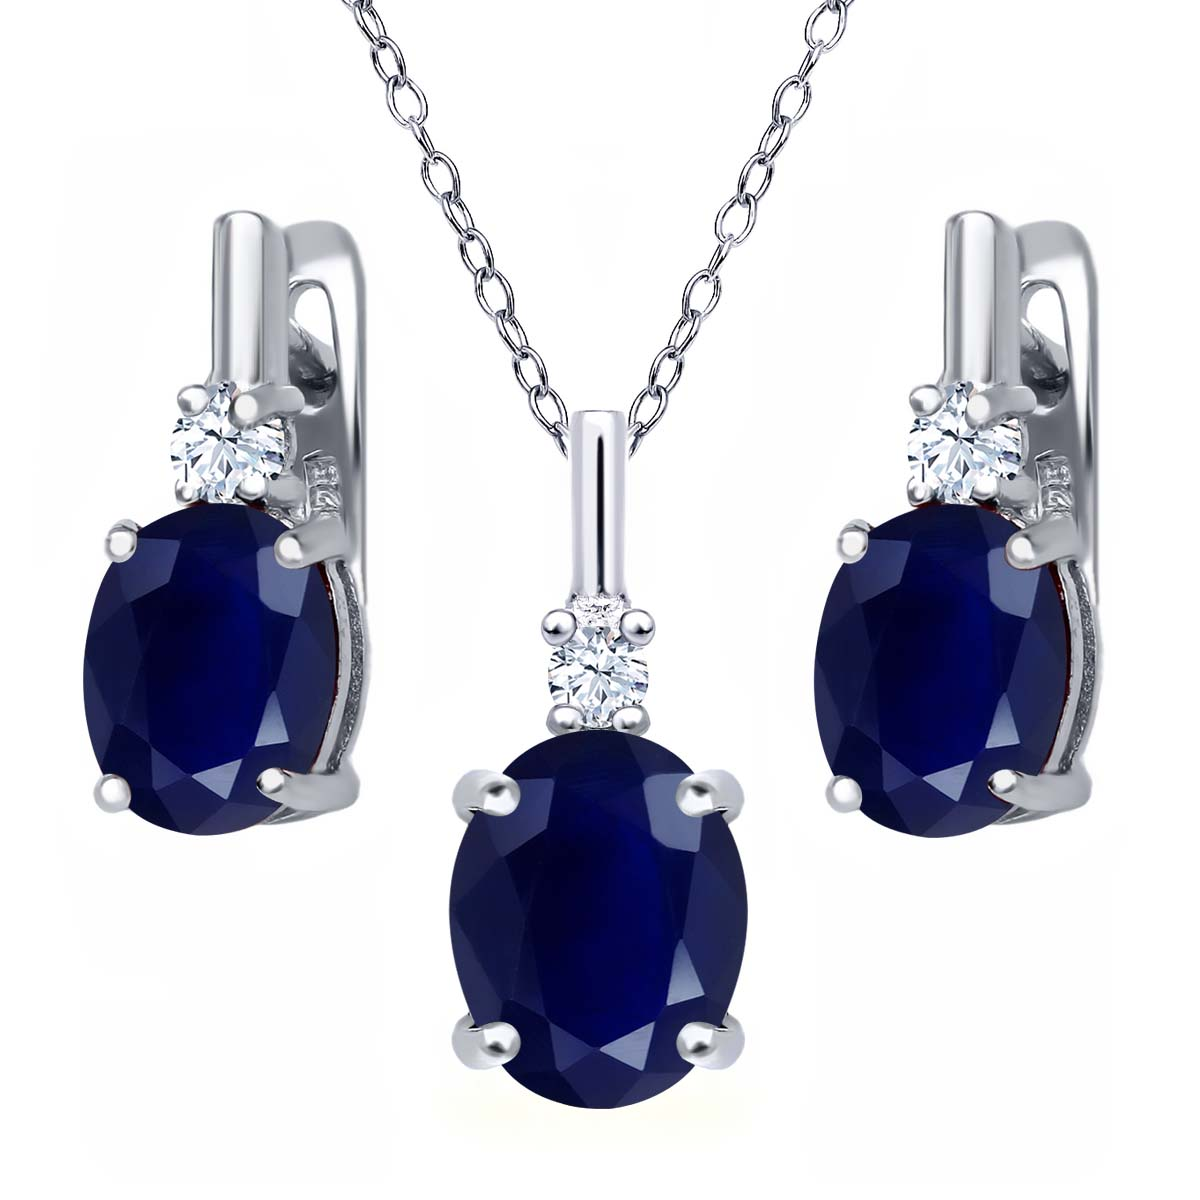 7.58 Ct Oval Blue Sapphire White Topaz 925 Sterling Silver Pendant Earrings Set by